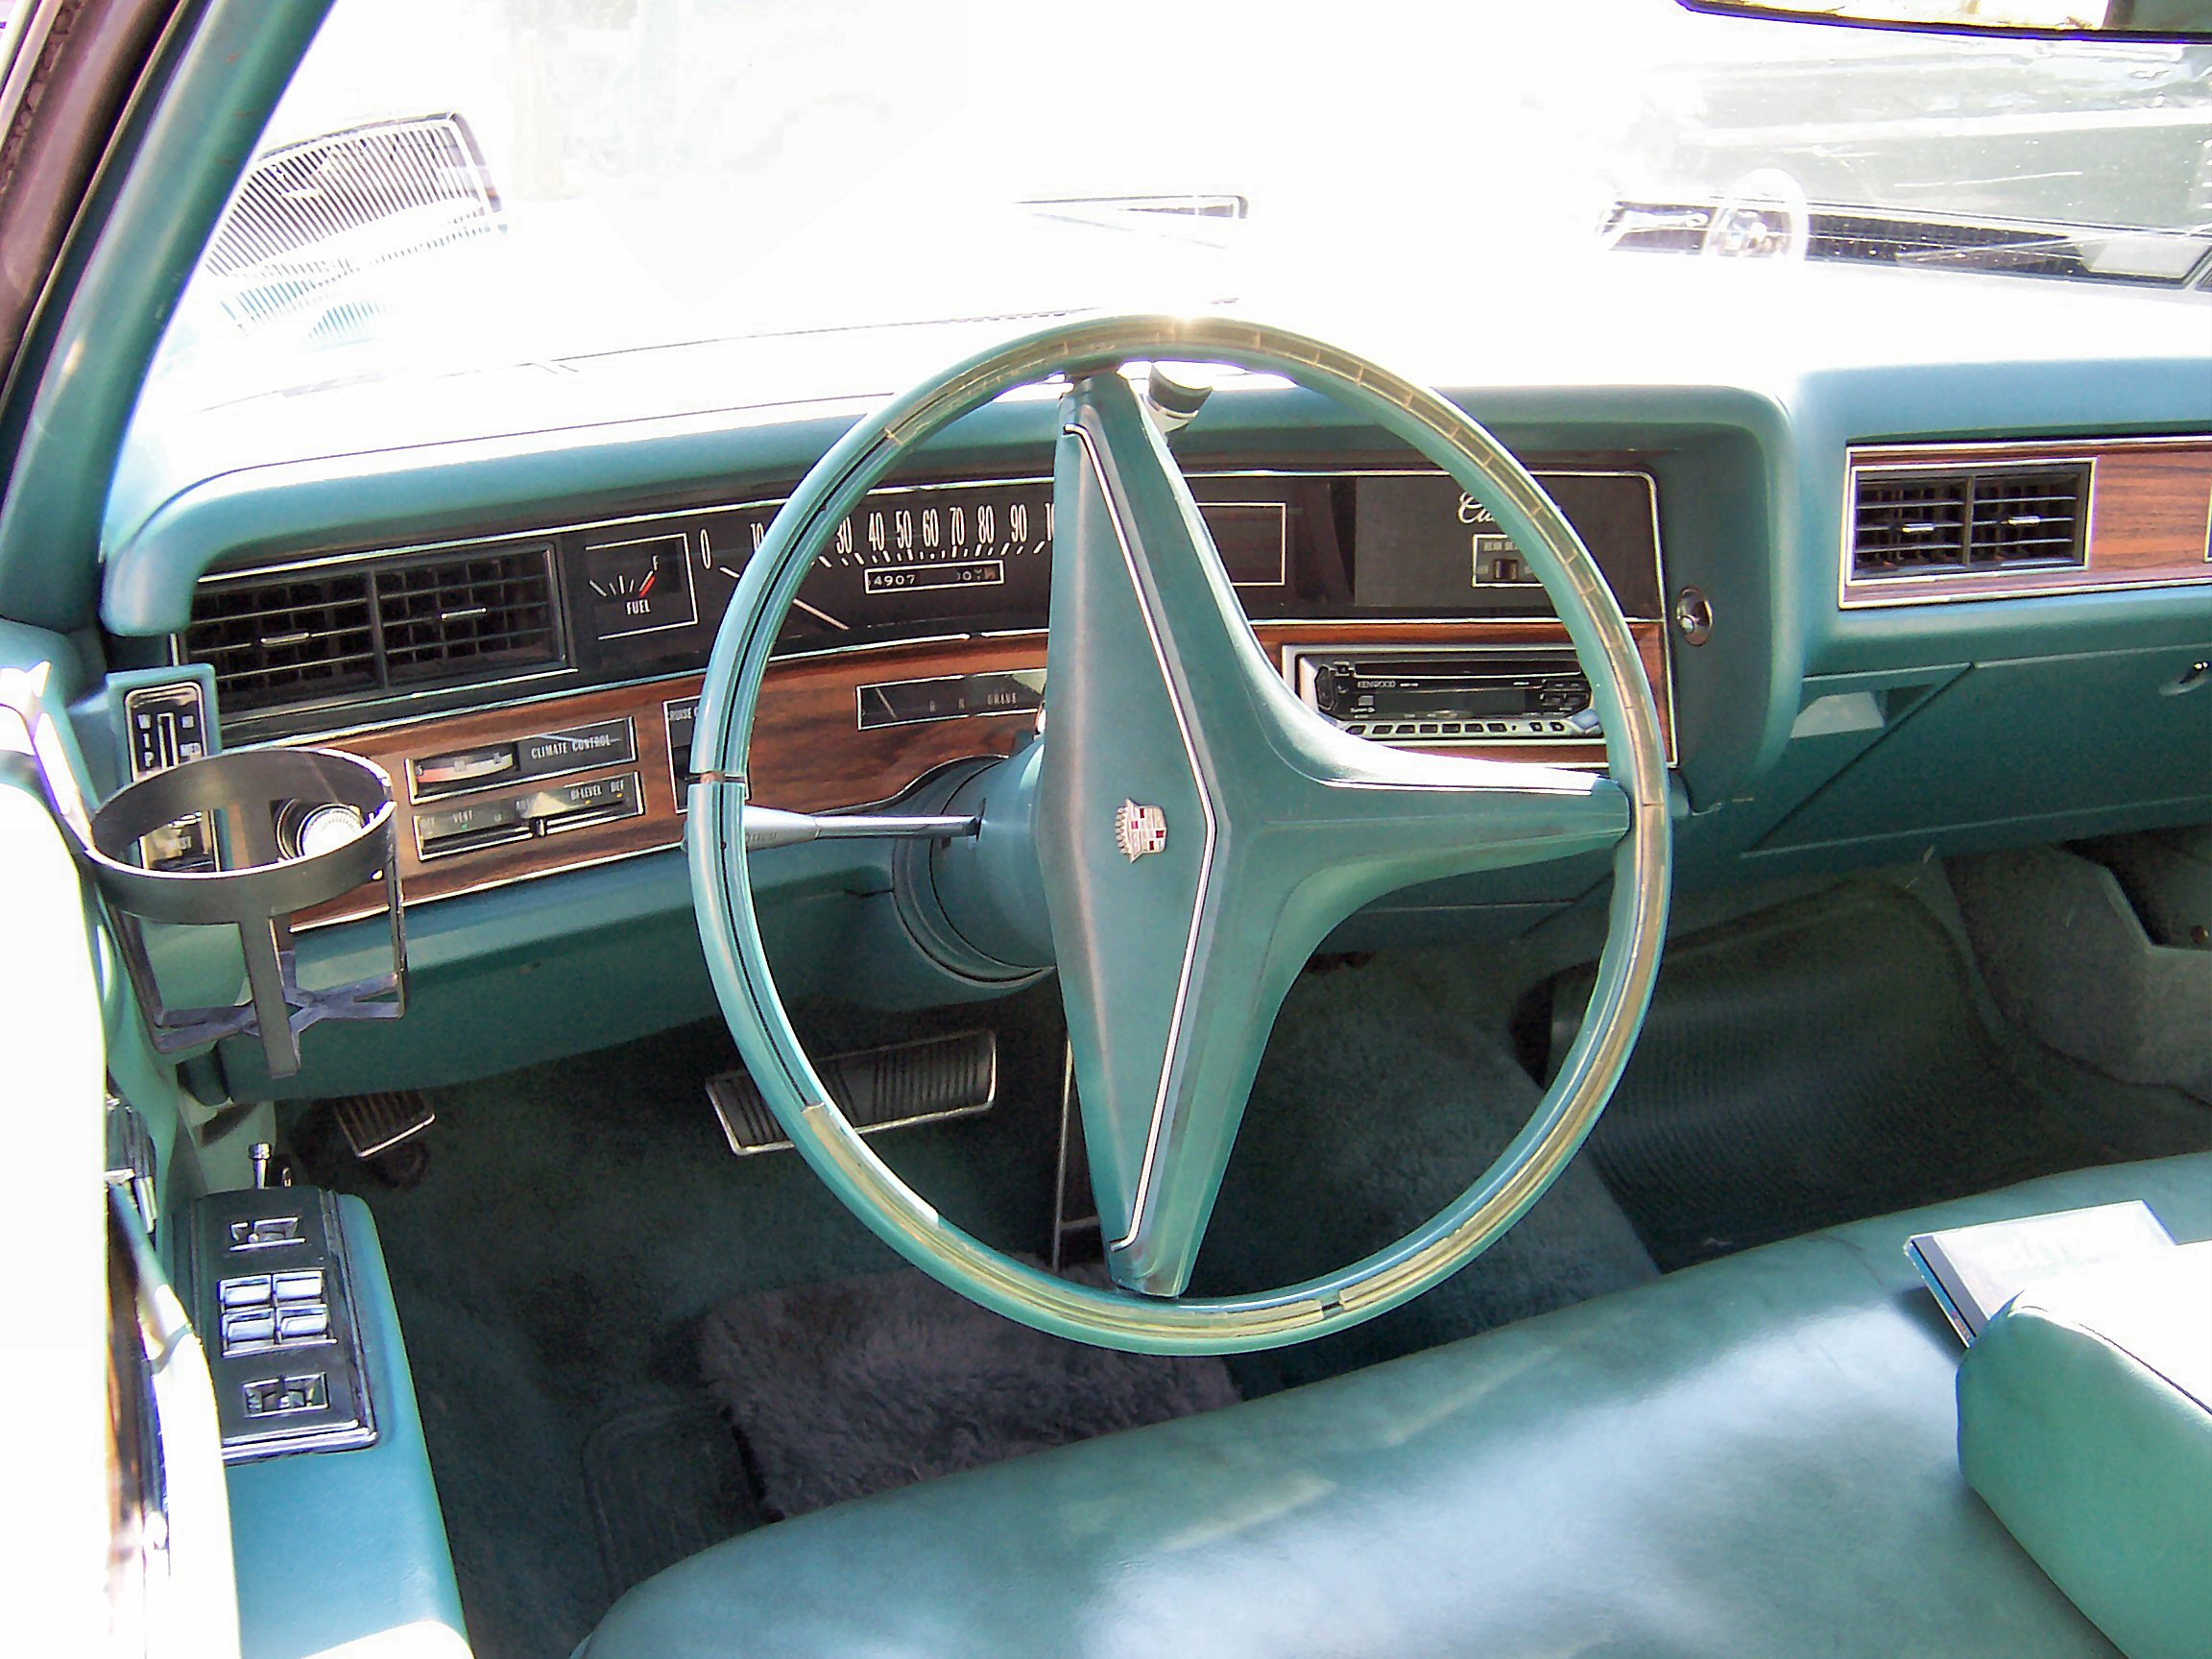 File 1976 cadillac sedan deville interior jpg wikimedia commons - File 1972 Cadillac Sedan De Ville Interior Jpg